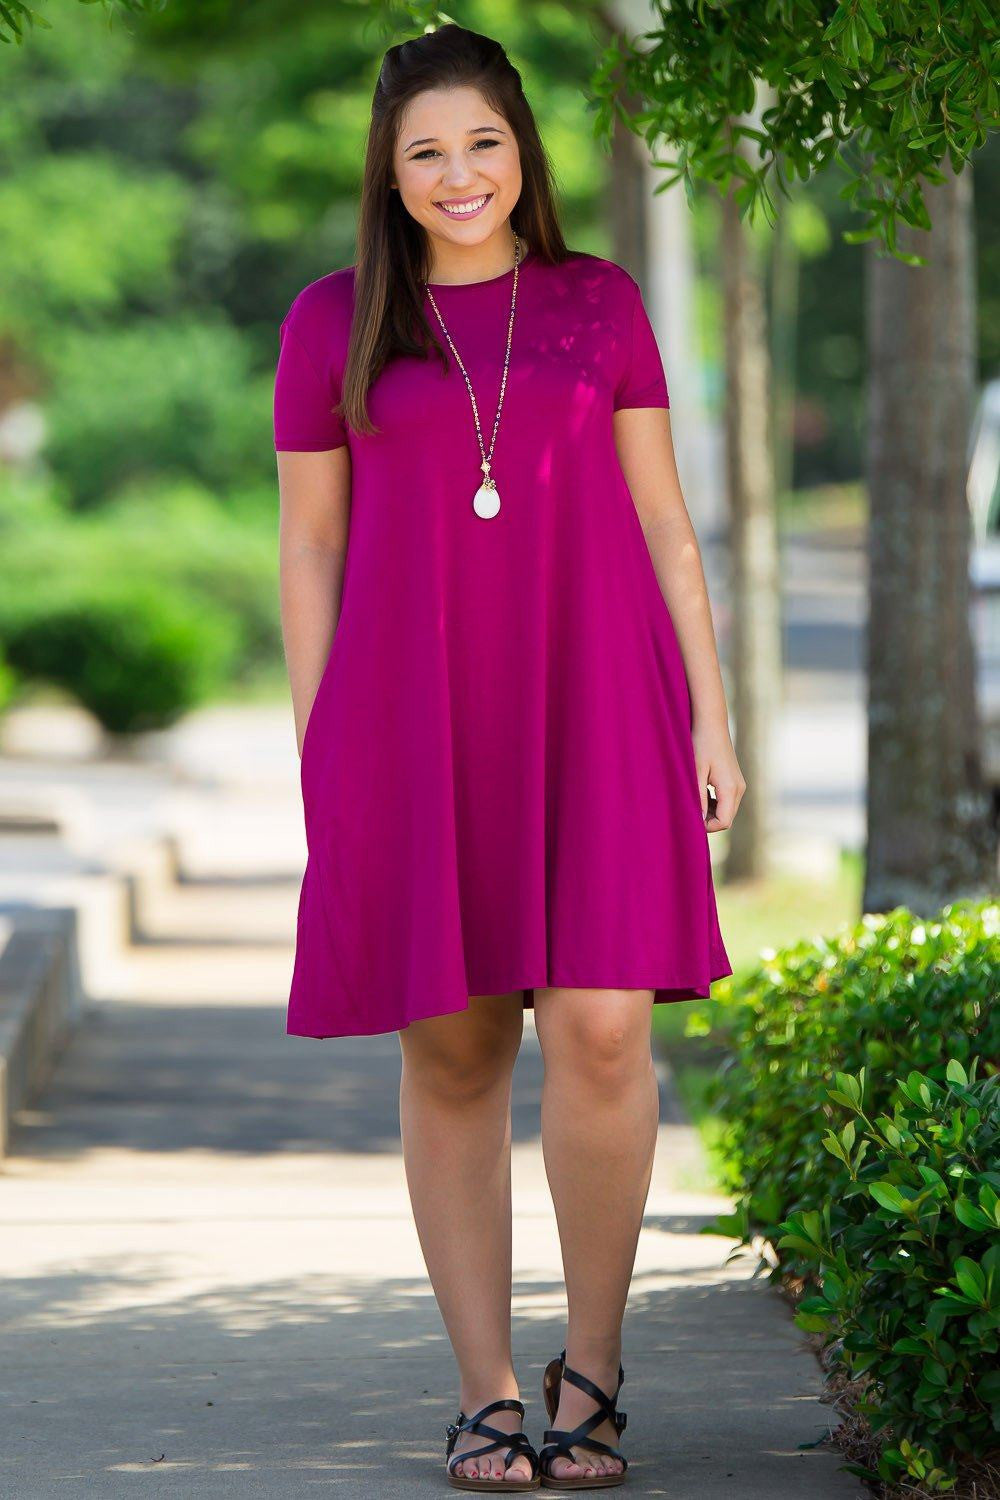 Piko Short Sleeve Swing Dress - Bright Fuchsia - Piko Clothing - 1